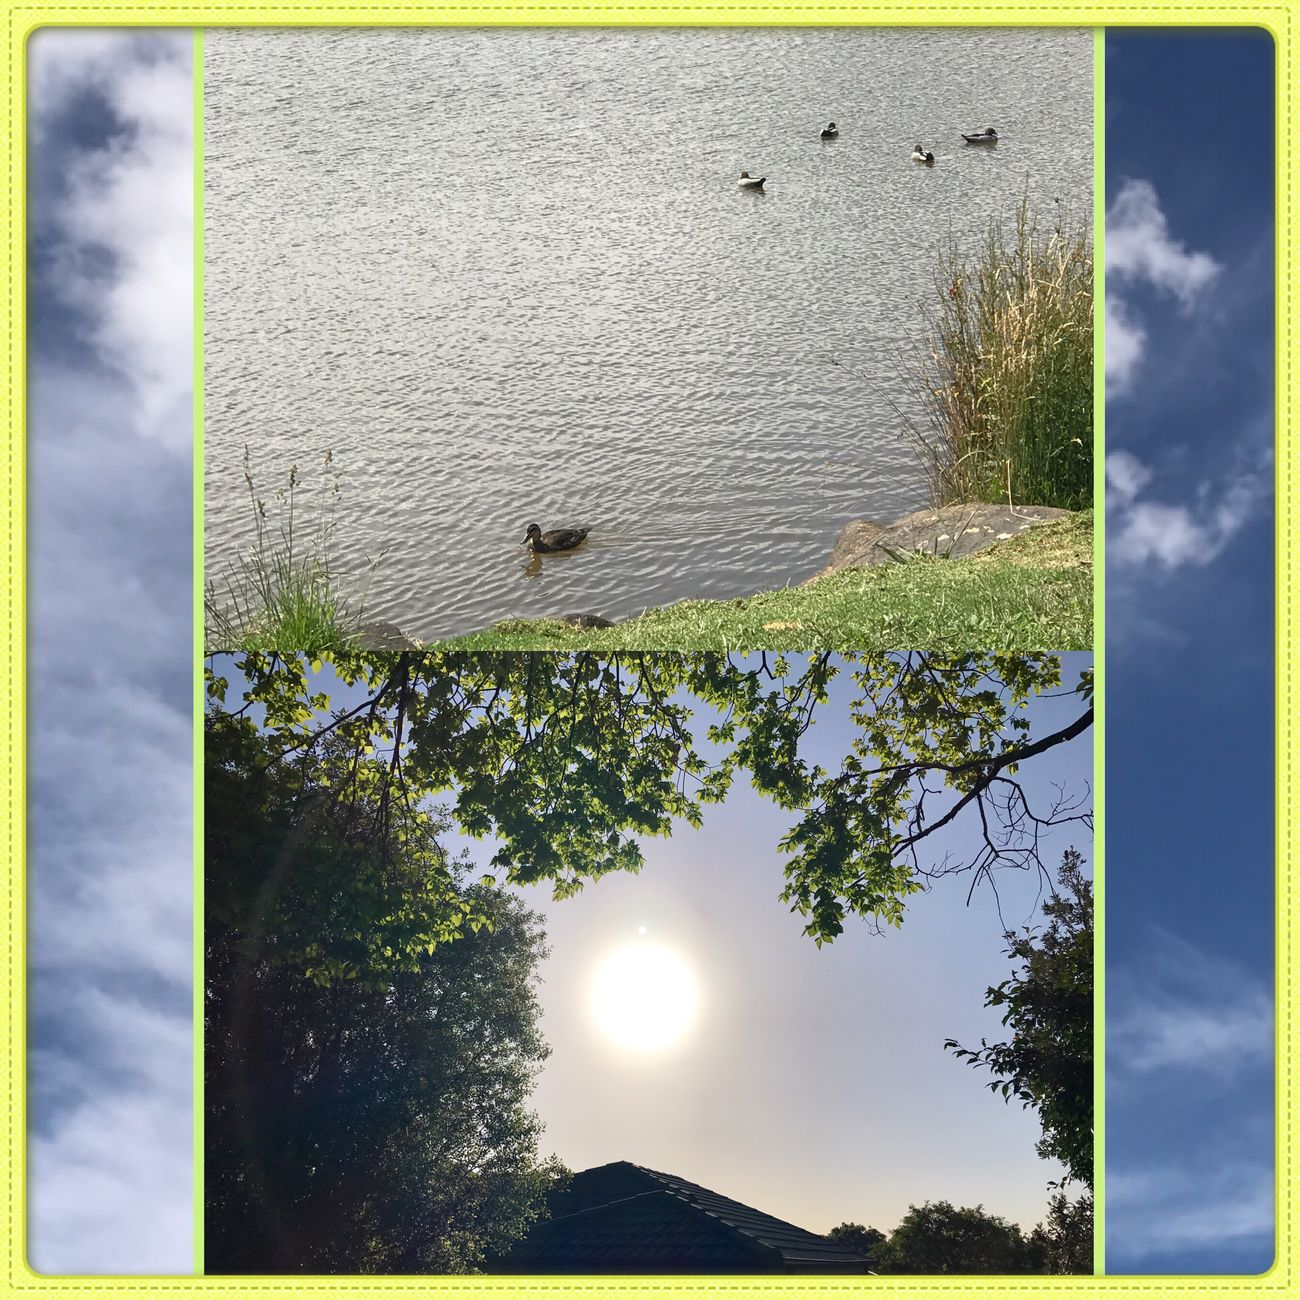 Ducks swimming in the Lake and Sunshine 👌🏼☀️🐤 Ducks Swimming Lake Animals Sunshine Nature MyPhotography Eyeemcollection Cute WhileIwaswalking Collage